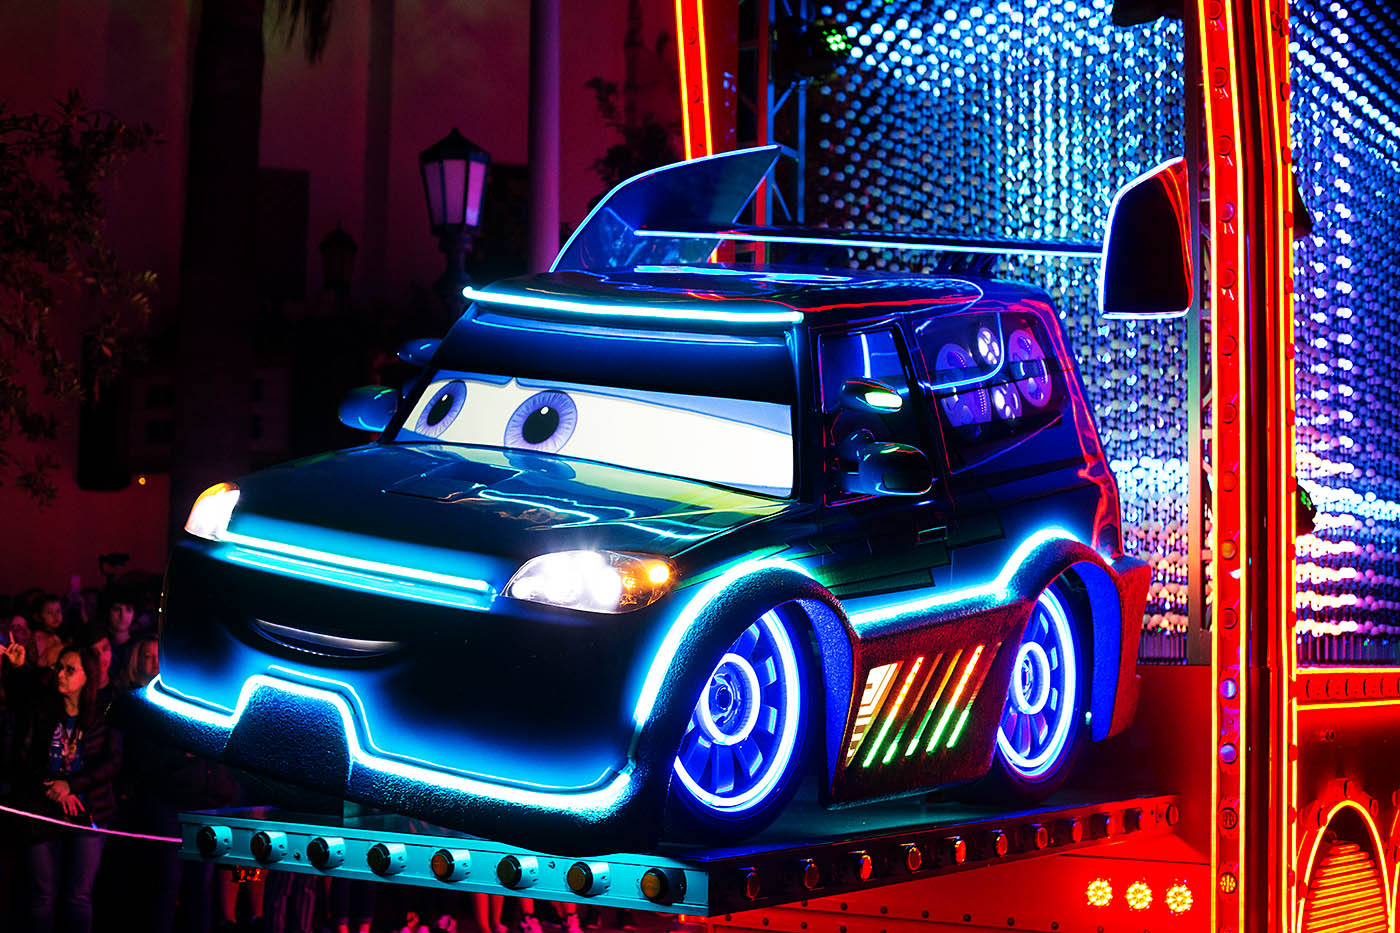 The Ultimate Guide to Pixar Fest at Disneyland and Disney California Adventure